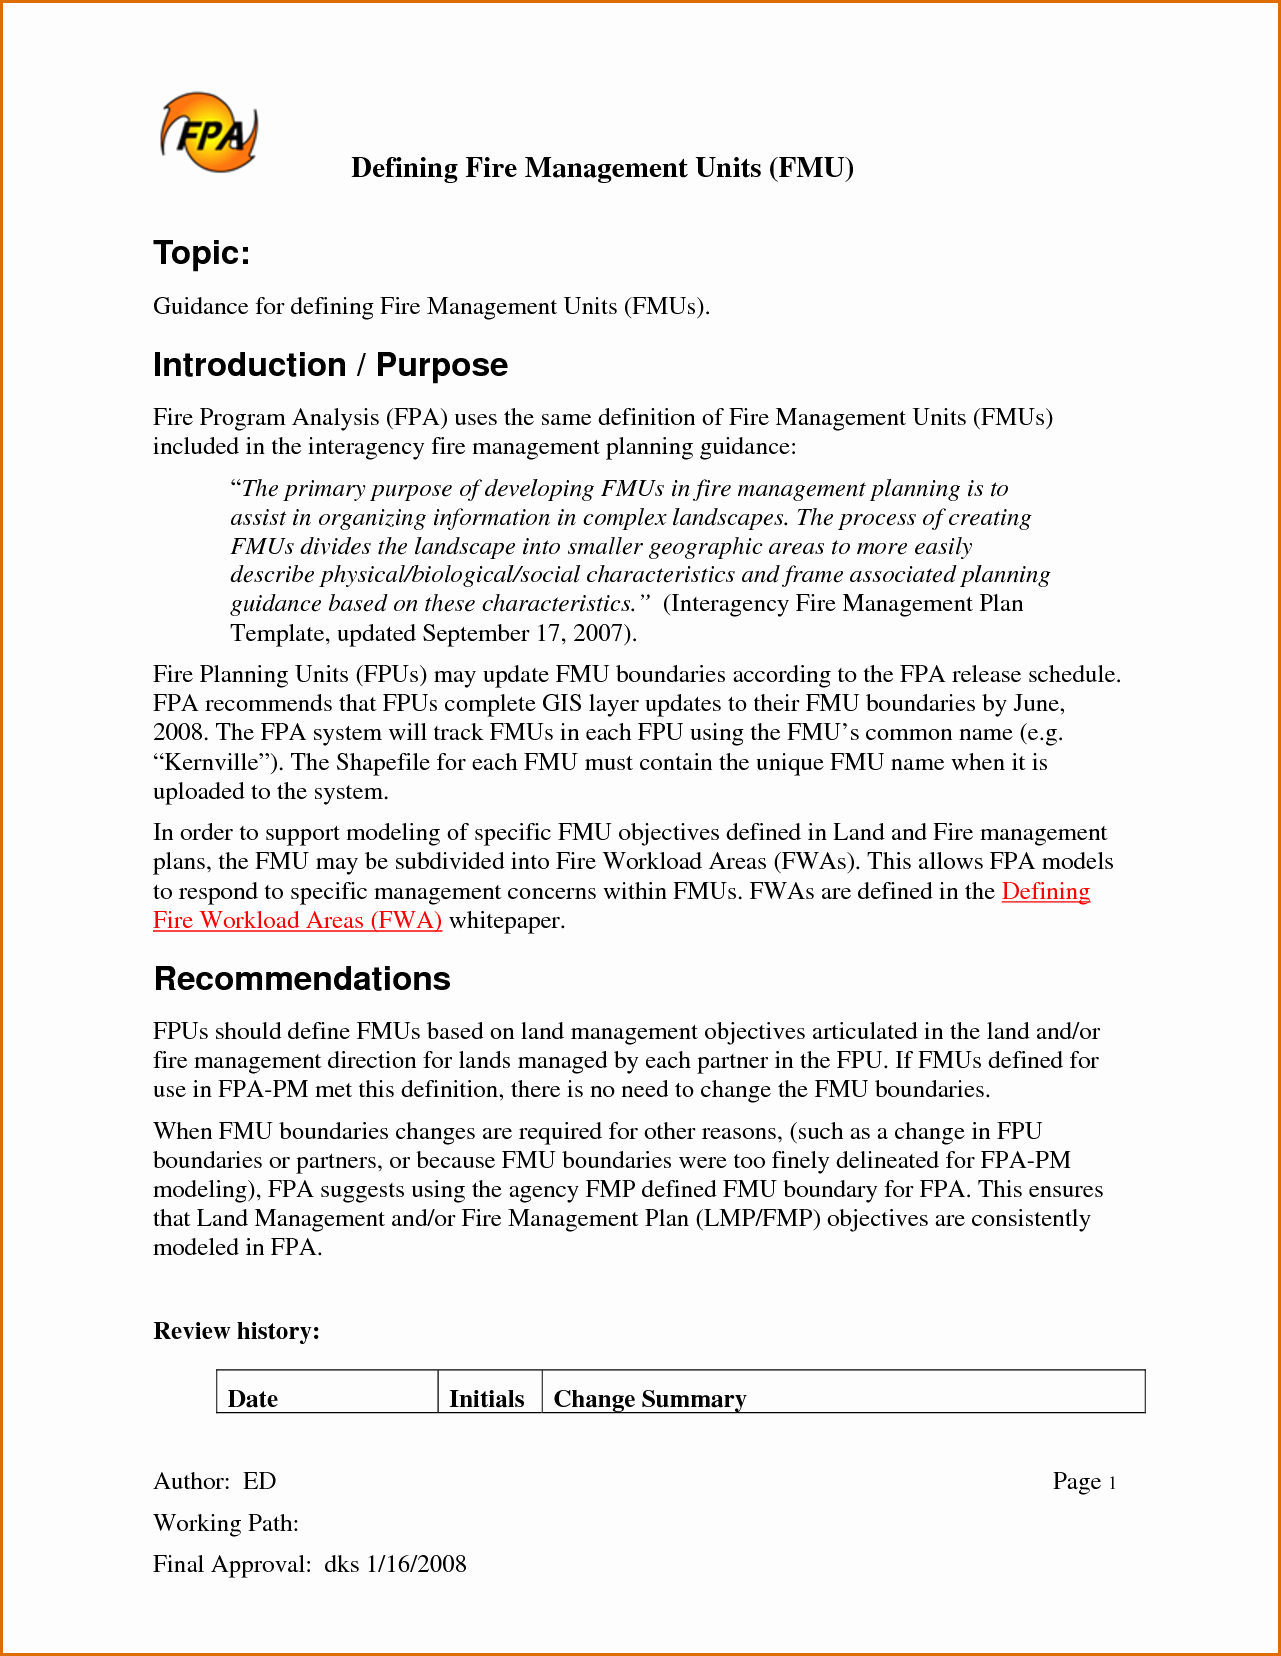 White Paper Outline Template New 8 White Paper Templates